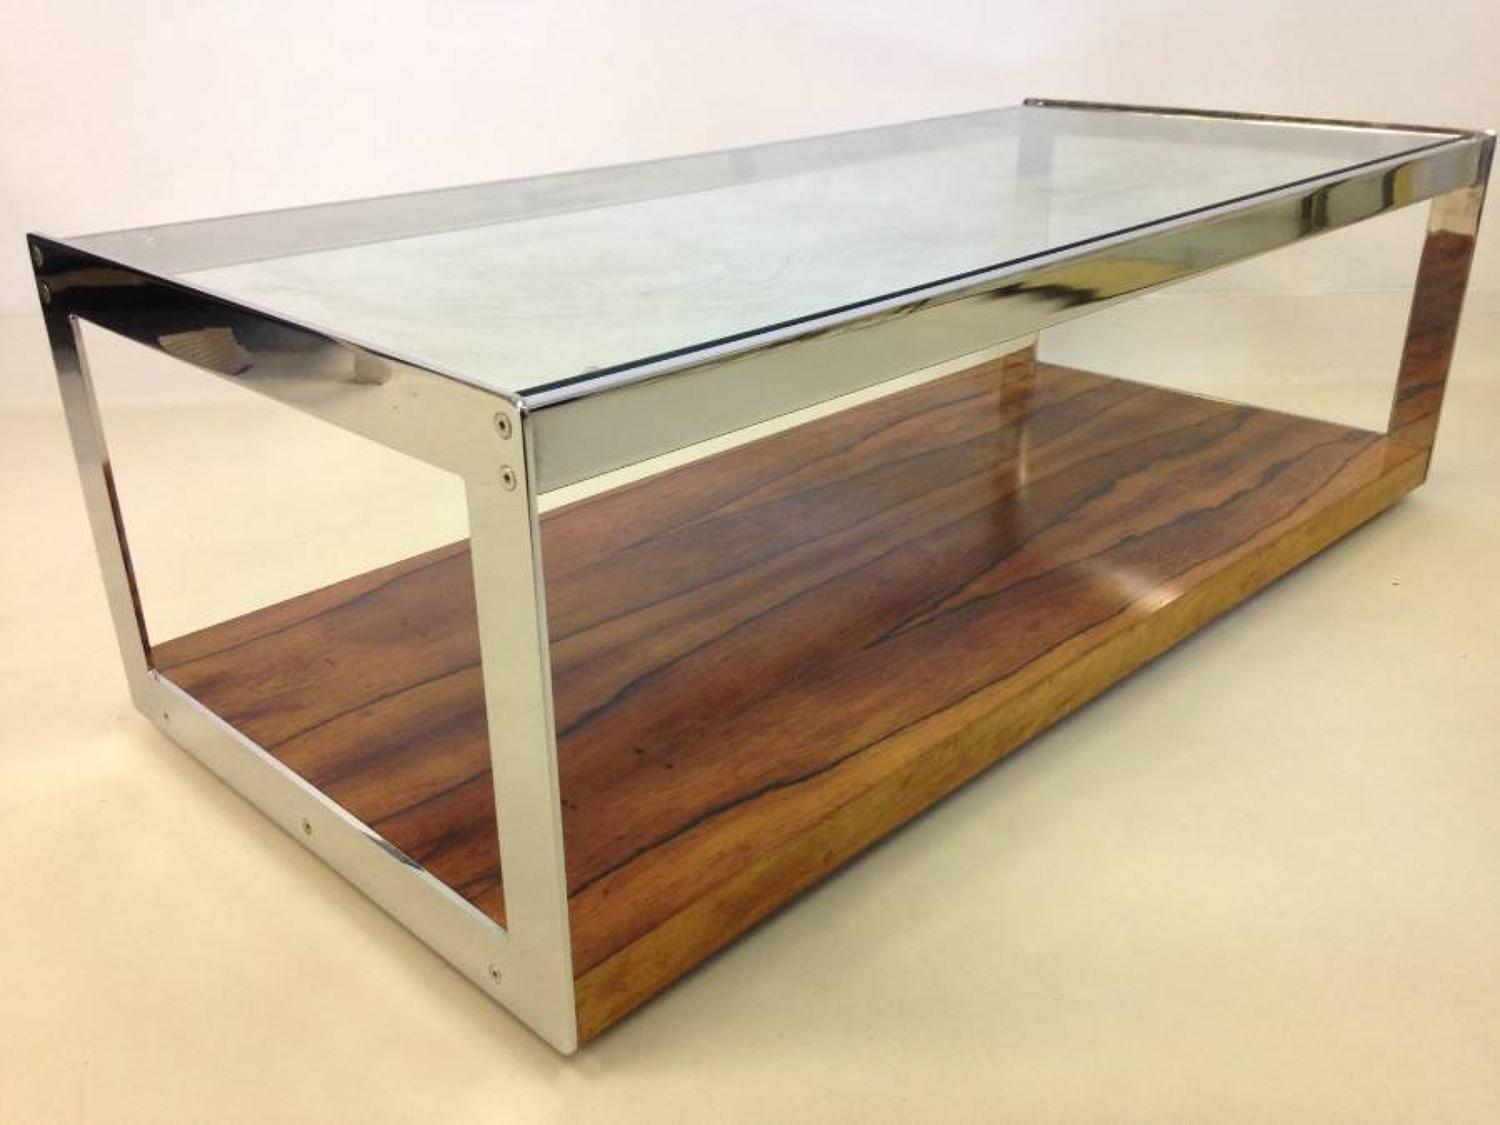 Chrome and rosewood table by Merrow Associates